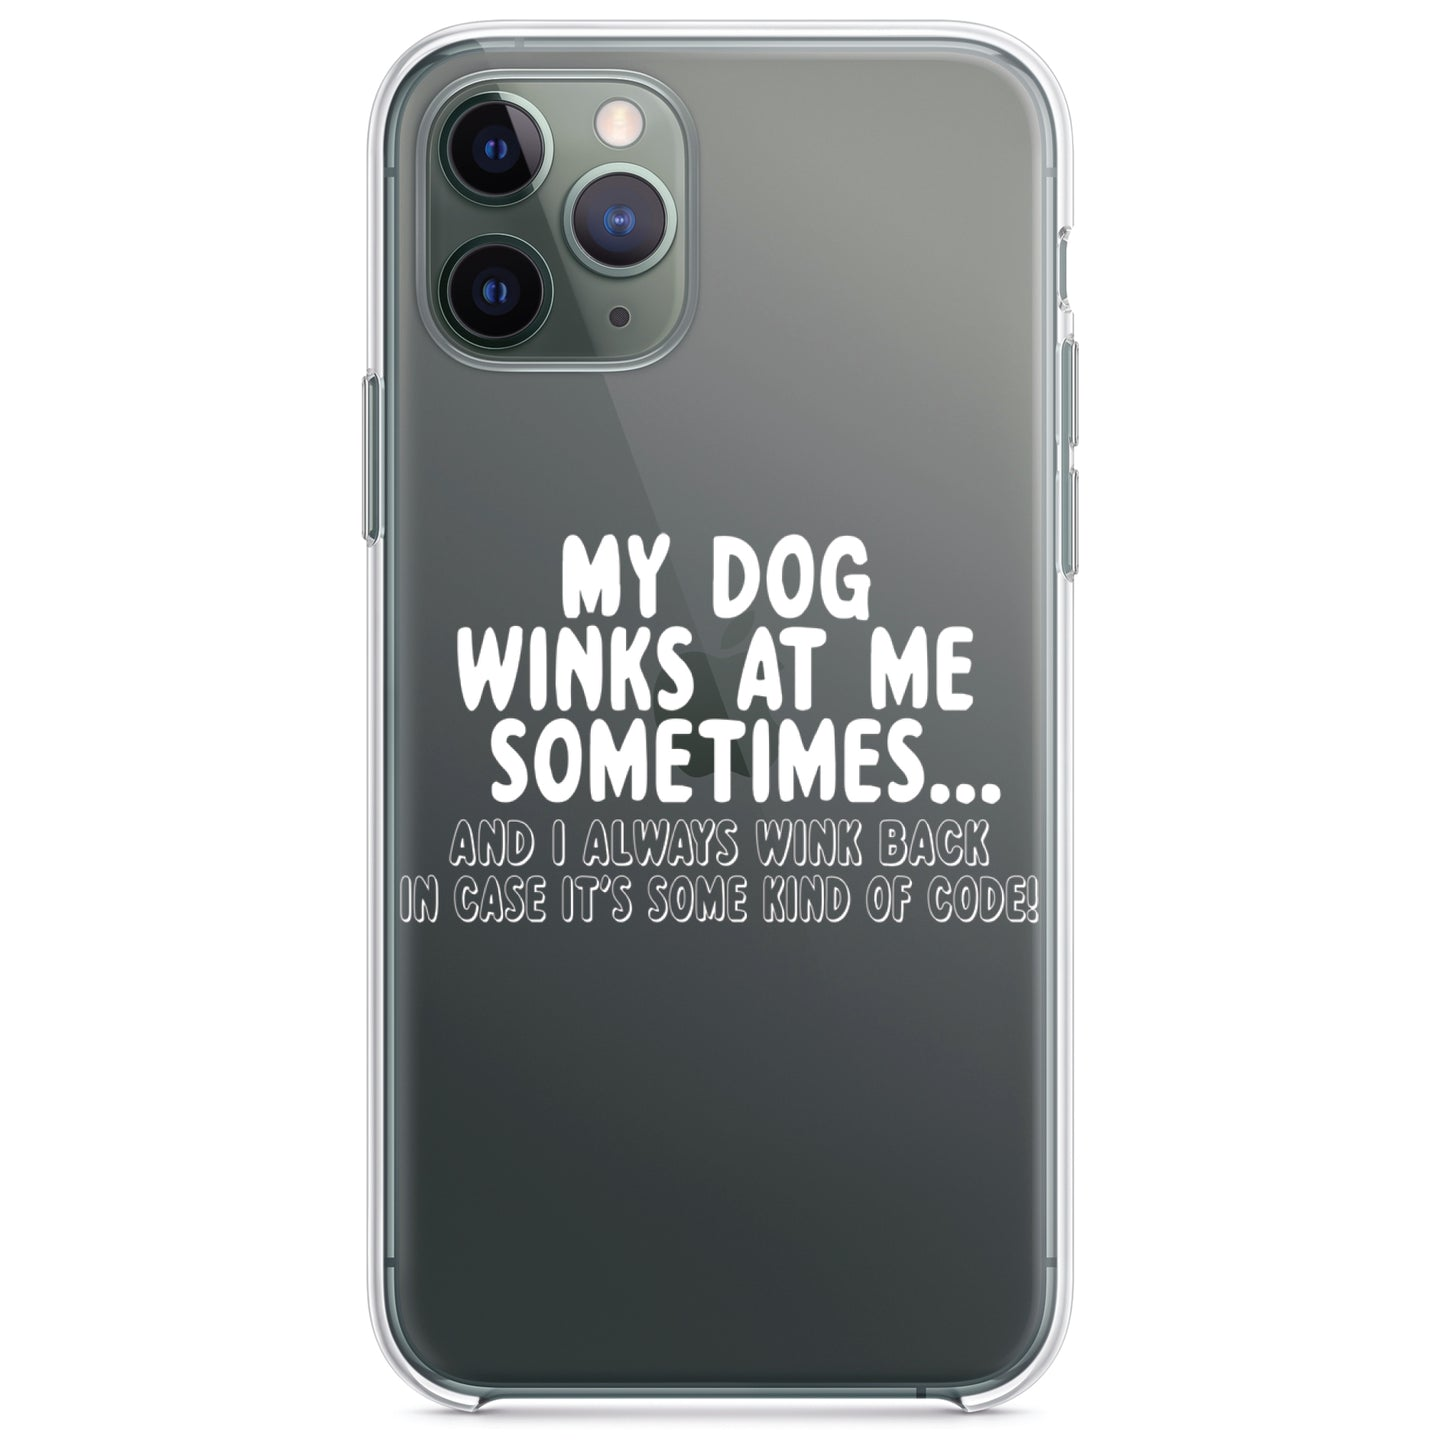 DistinctInk® Clear Shockproof Hybrid Case for Apple iPhone / Samsung Galaxy / Google Pixel - My Dog Winks at Me Sometimes